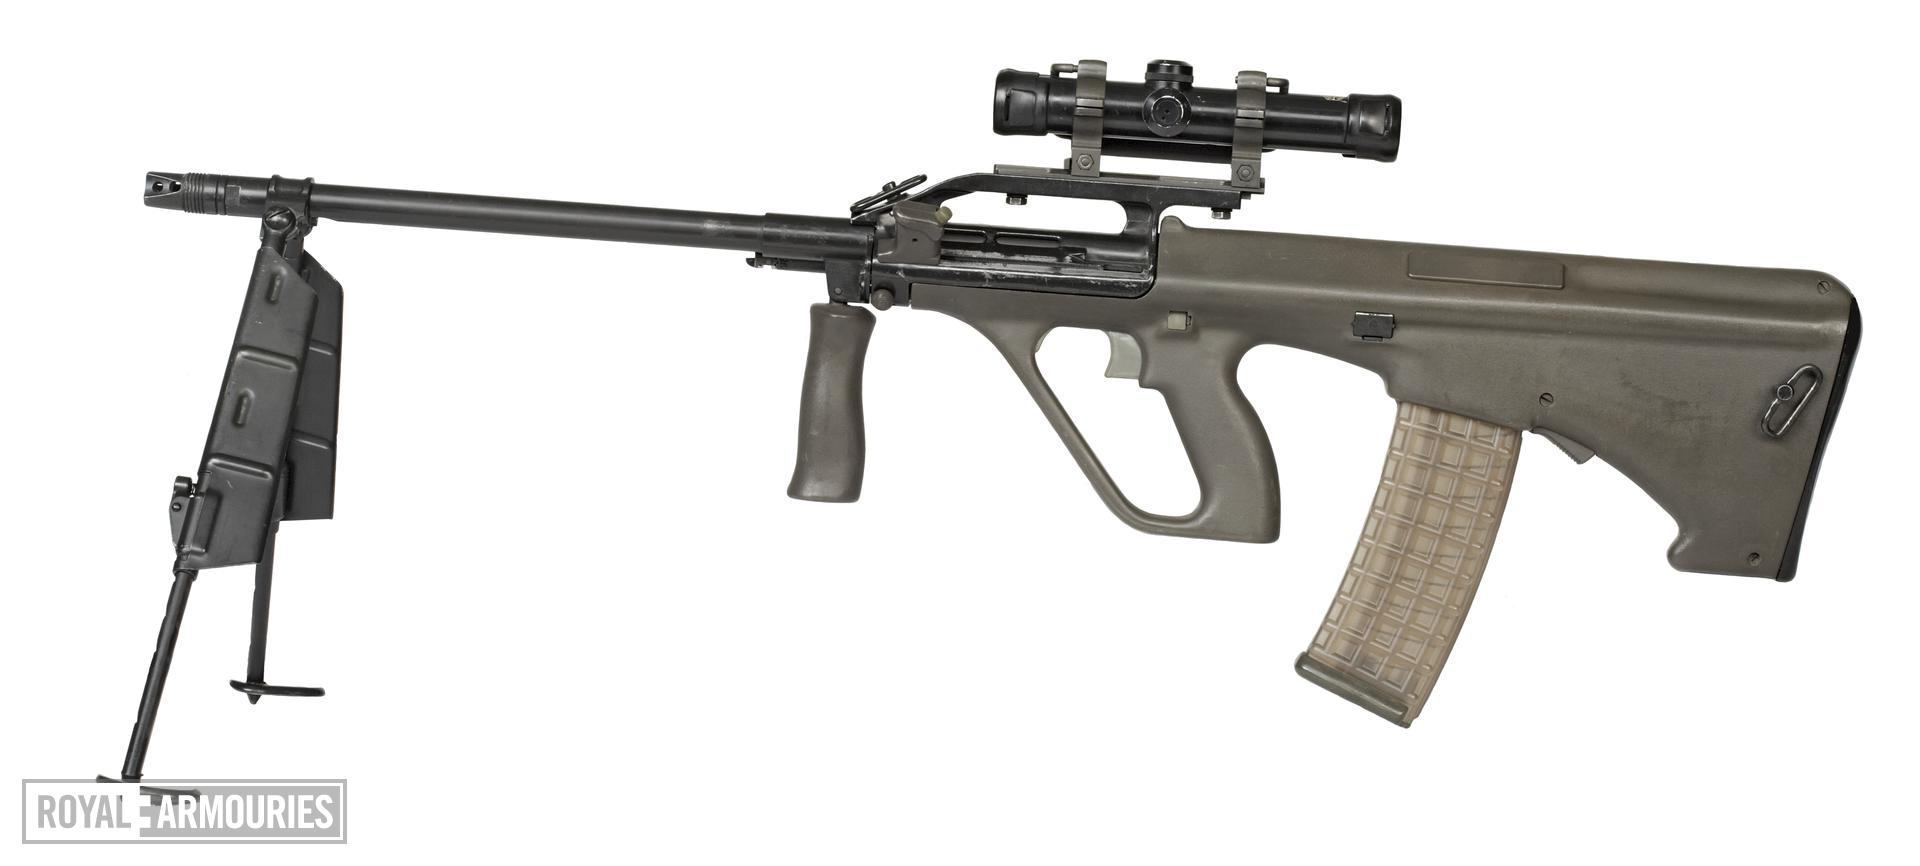 Centrefire automatic light machine gun - Steyr AUG-A1 LSW Light Support Weapon (LSW).